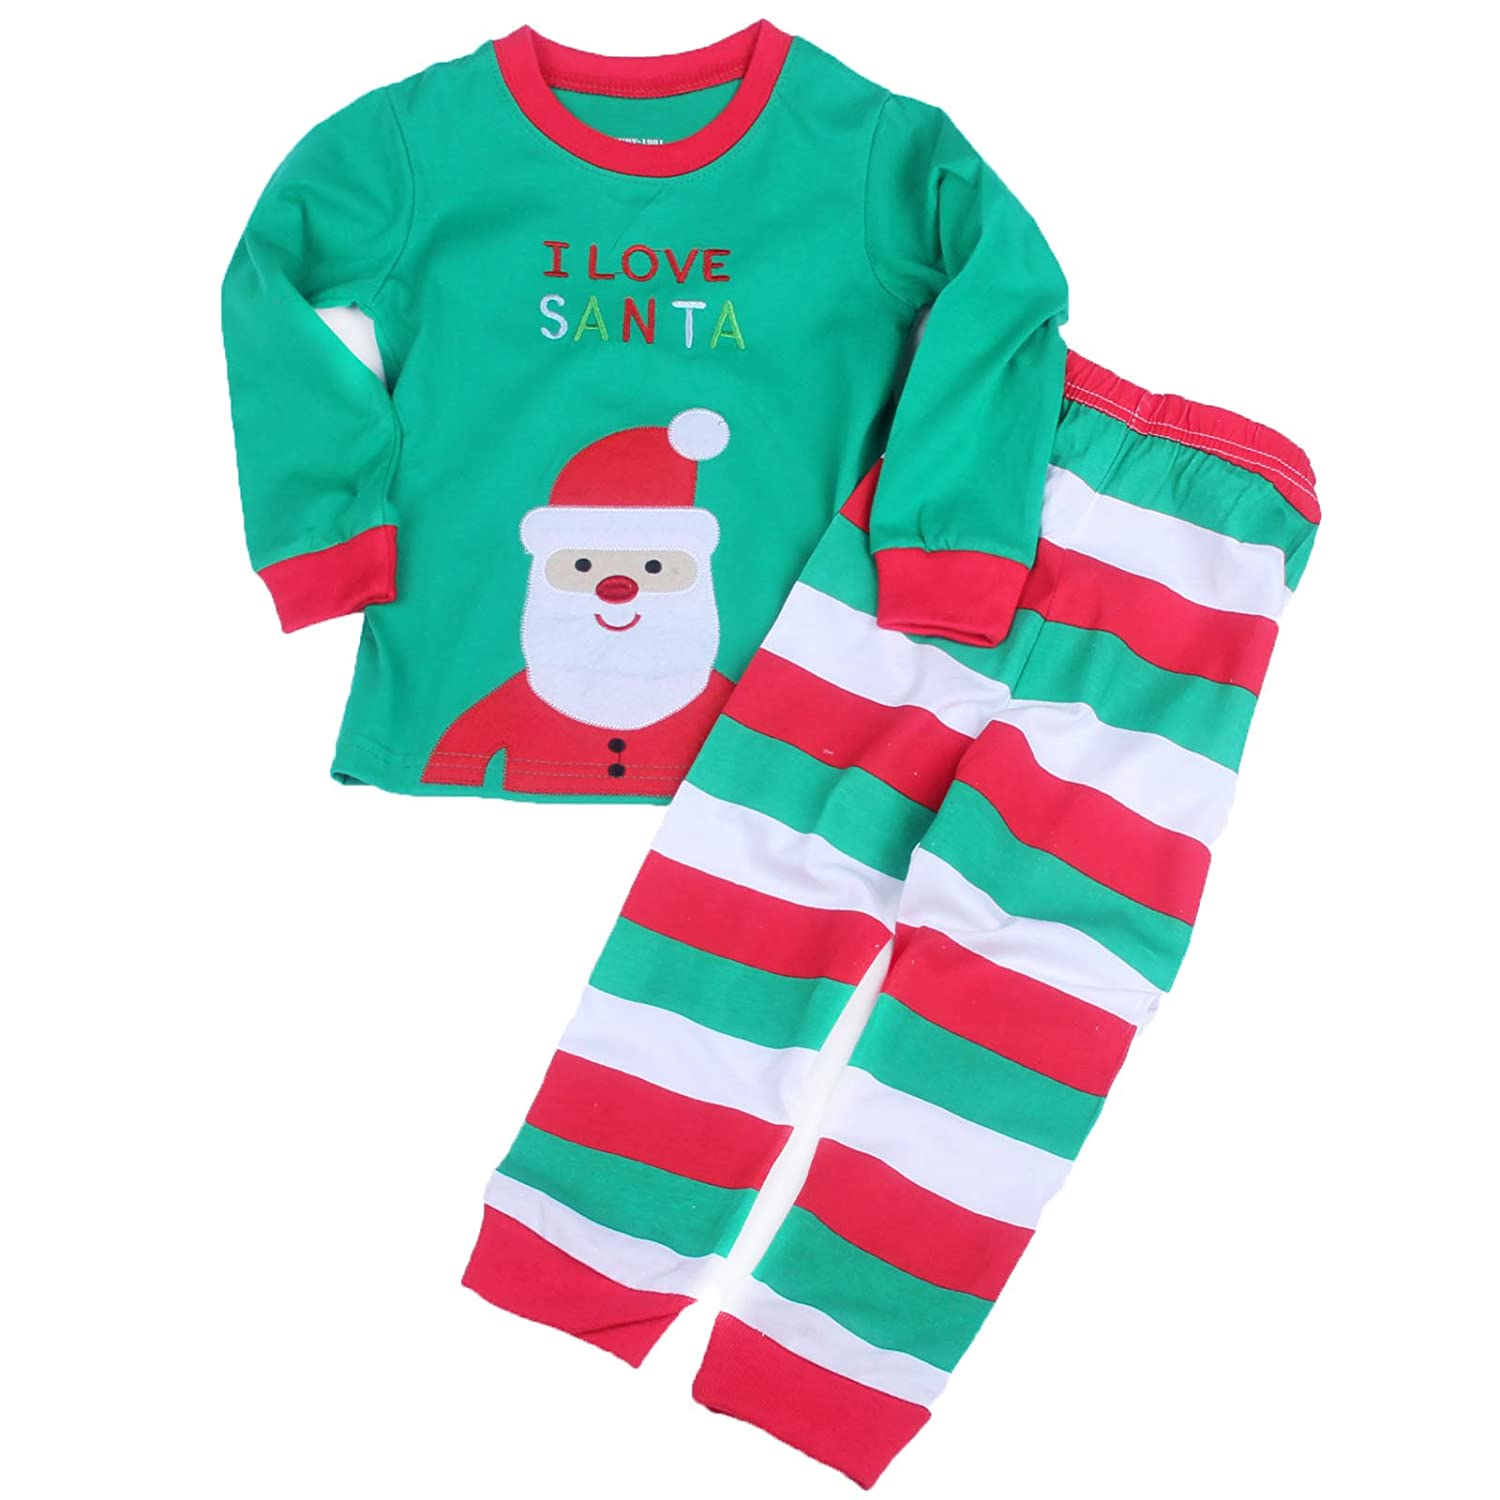 amazoncom baby house toddler kid boys girls christmas pajama t shirtlong pants size t3 clothing - Christmas Pjs Toddler